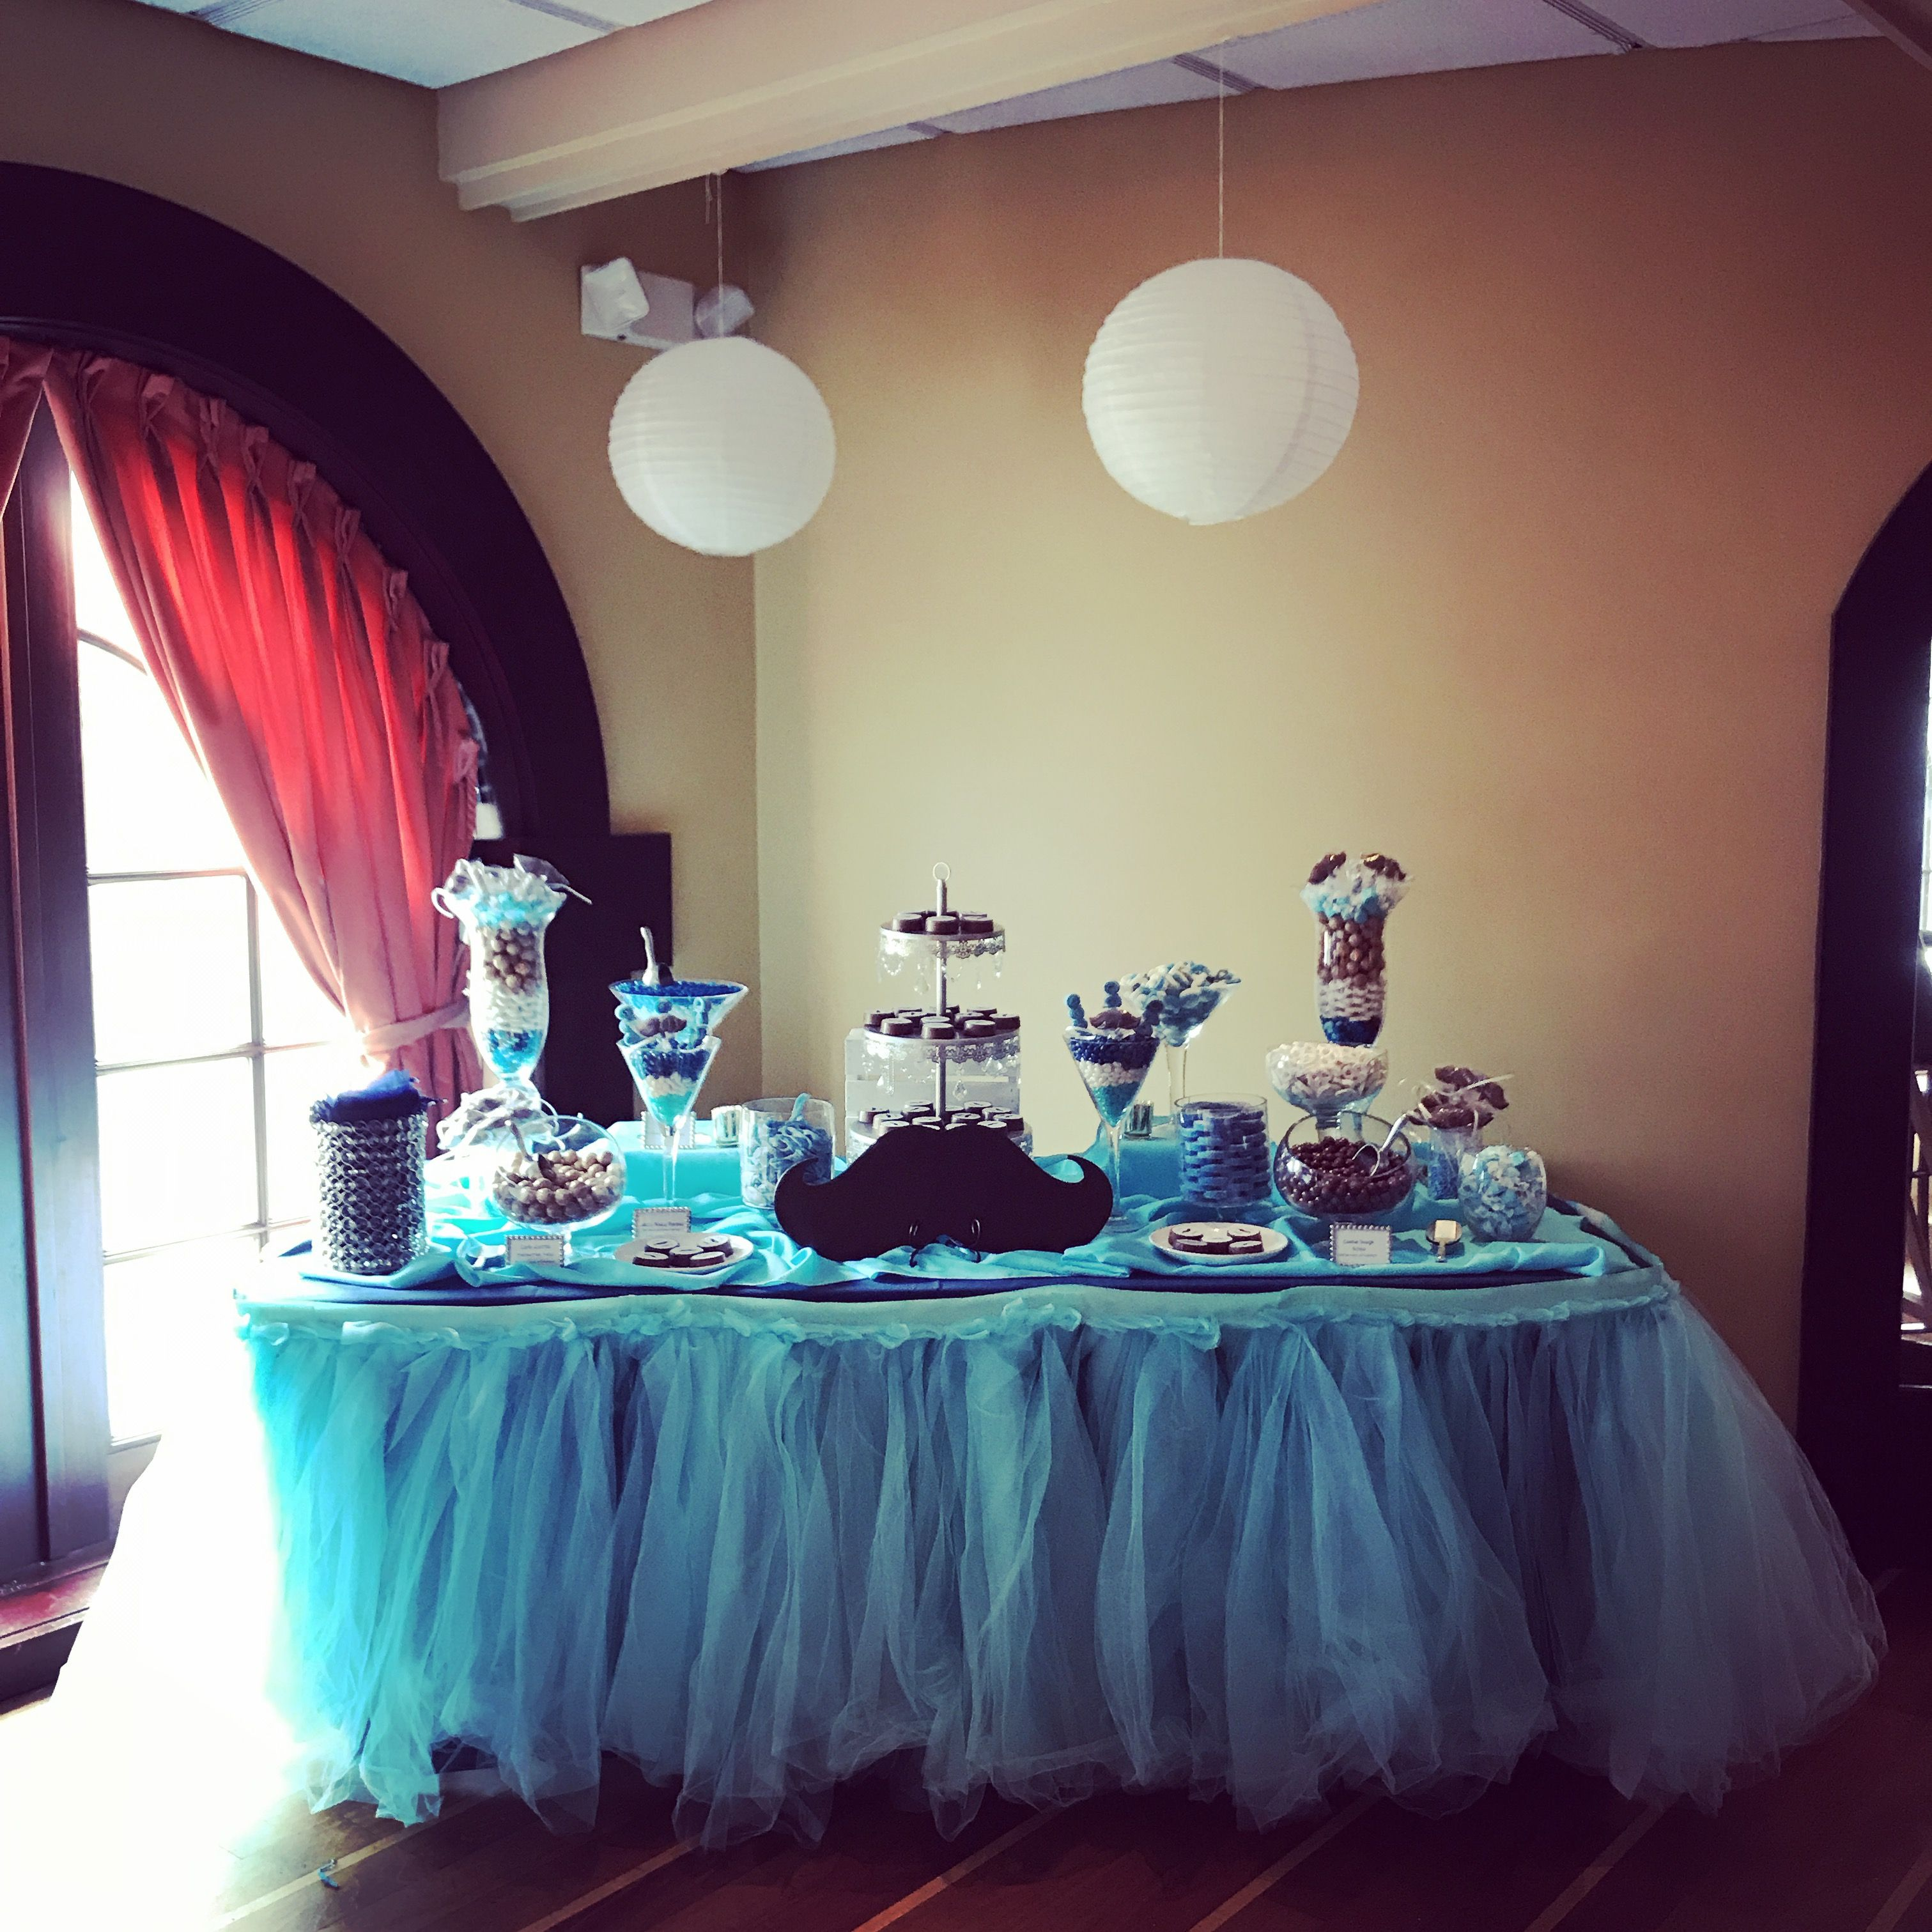 Baby shower candy table at Rue57 restaurant that we made